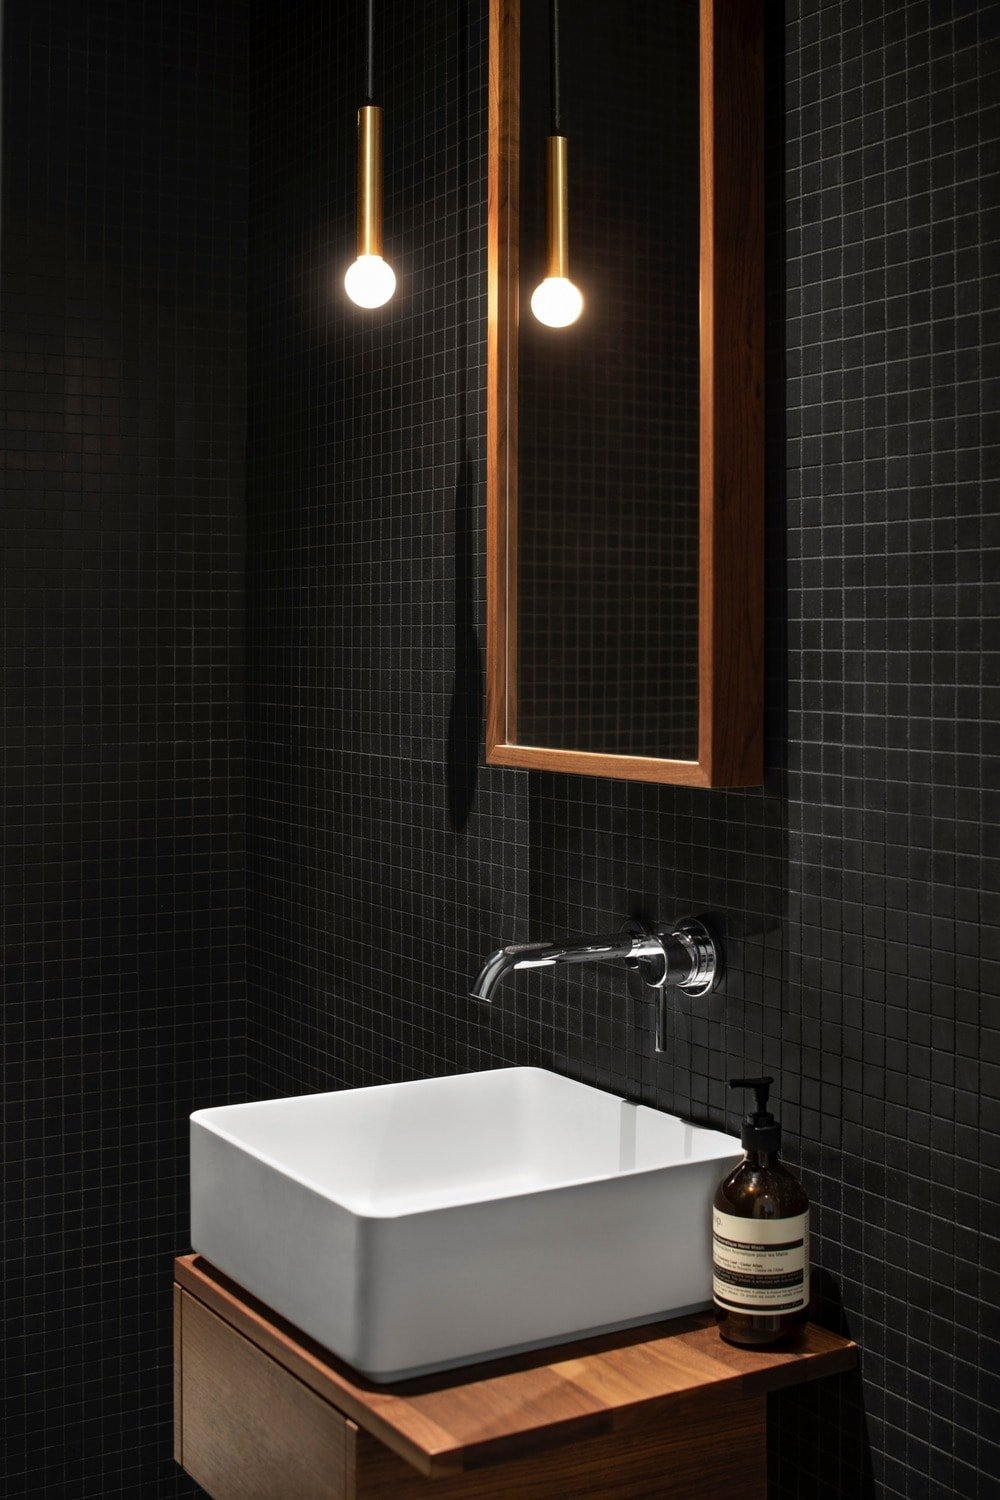 This is a close look at the modern white freestanding sink of the bathroom on a wooden floating vanity. This stands out against the black tiles of the wall with a wall-mounted mirror with wooden frames.